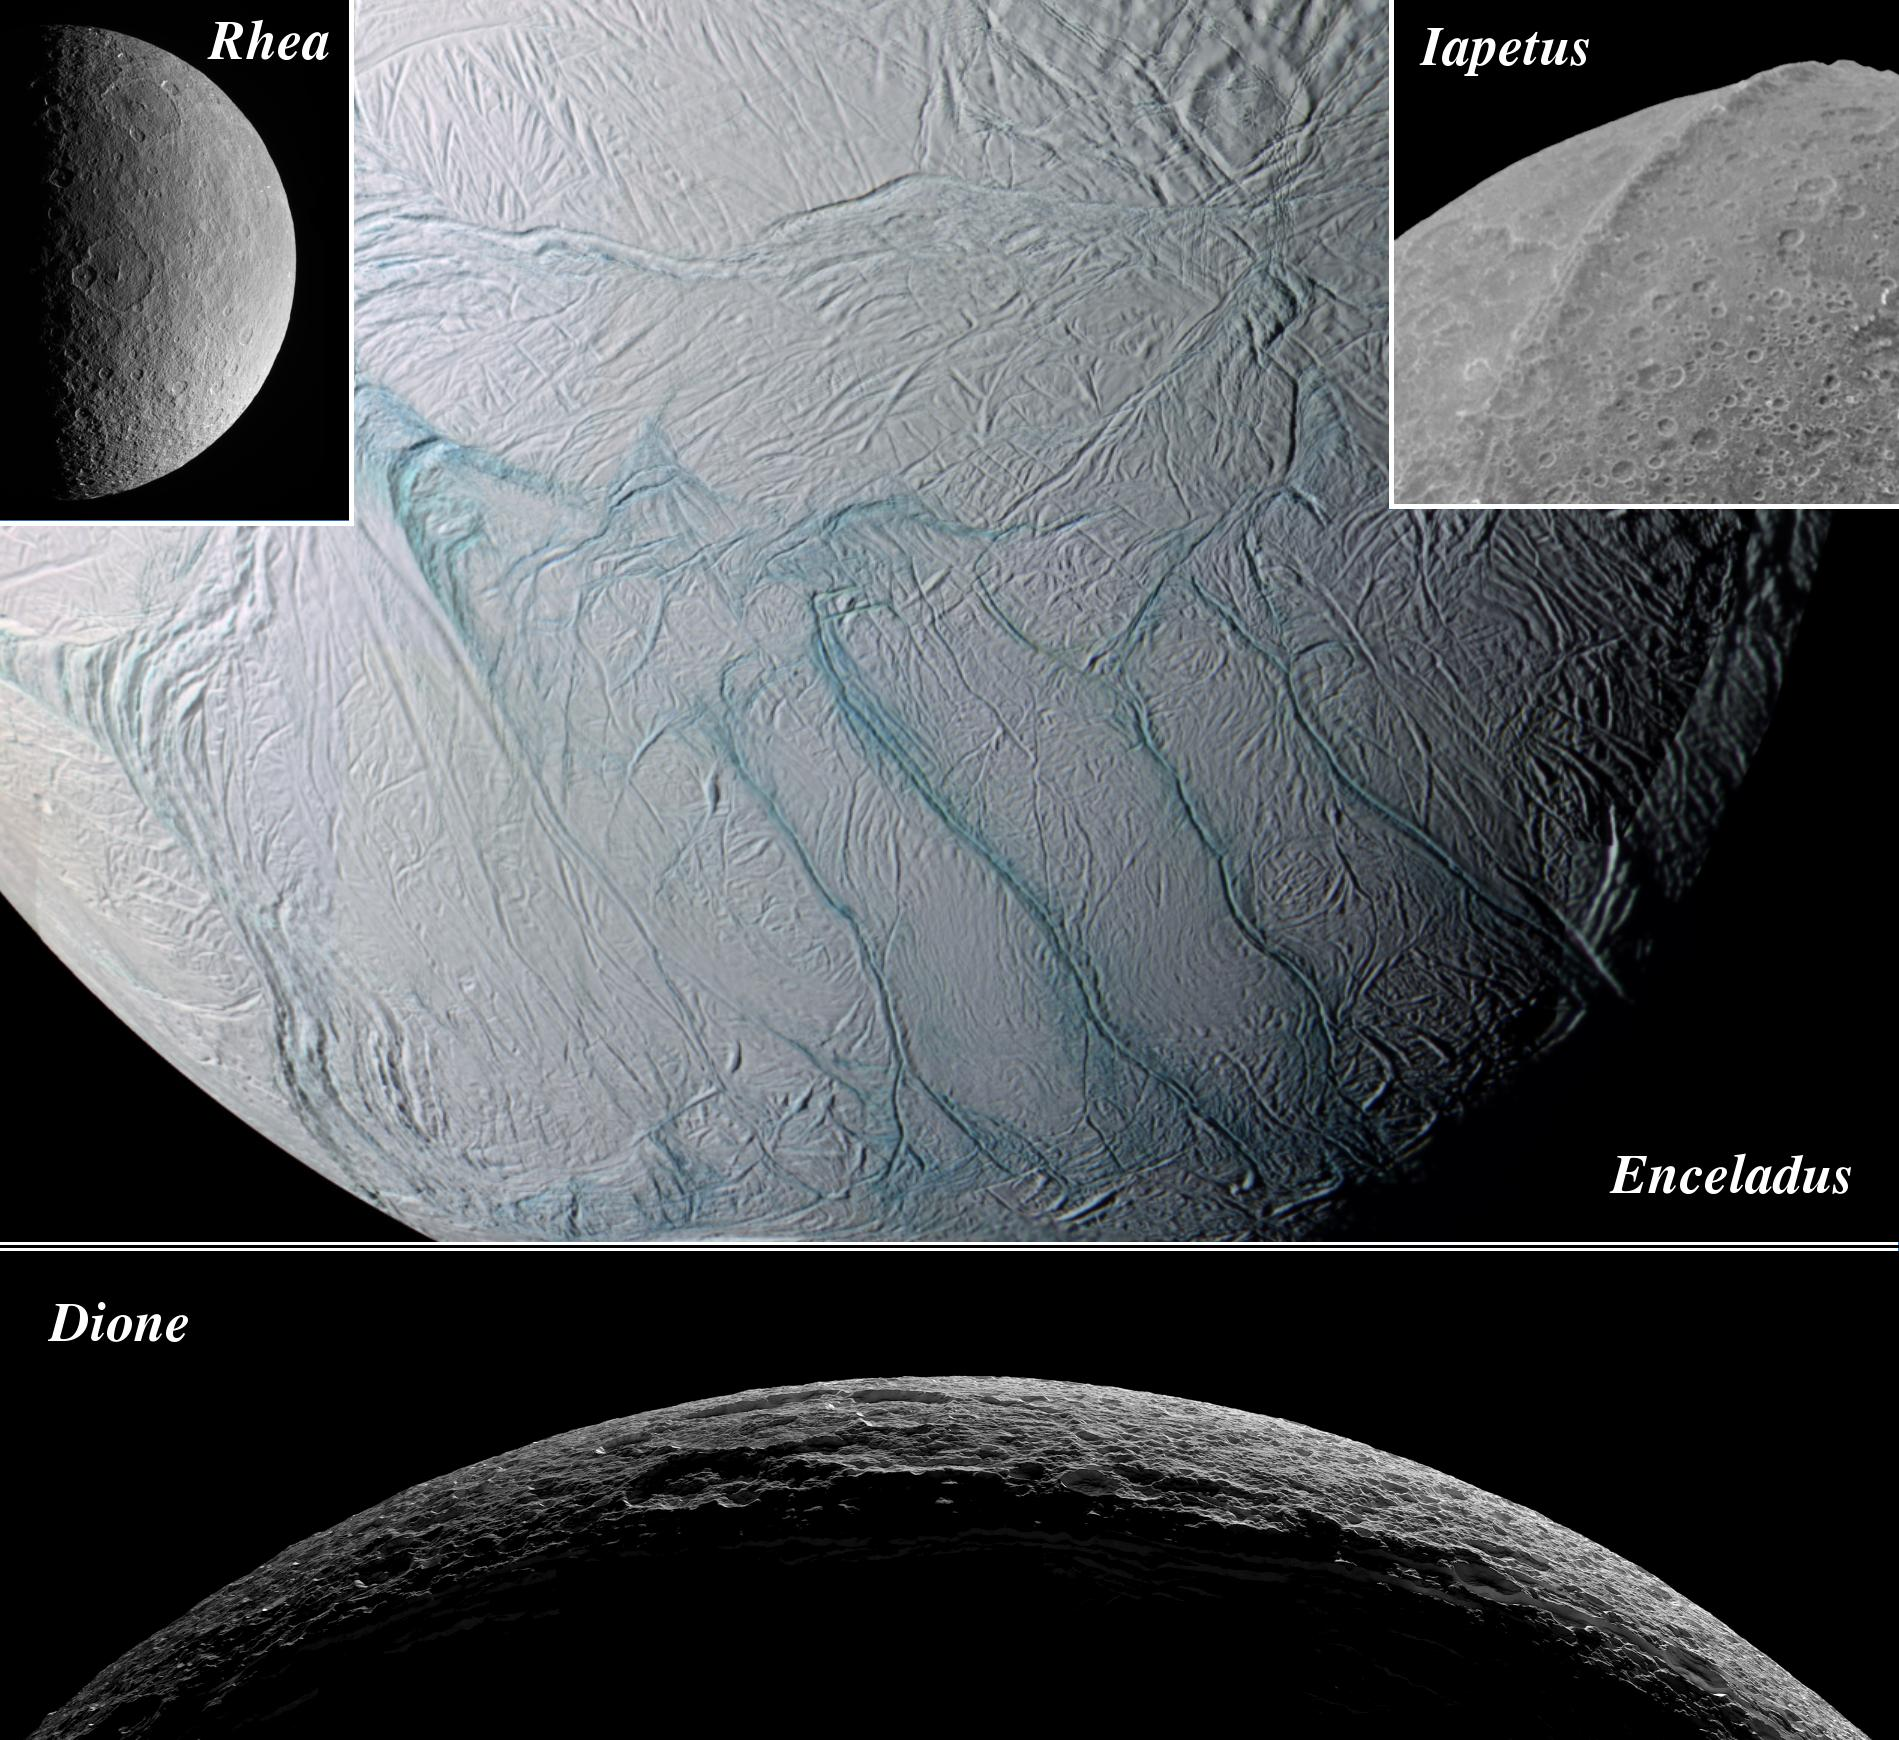 Montage showing different views of Saturn's moons Dione, Enceladus, Iapetus and Rhea